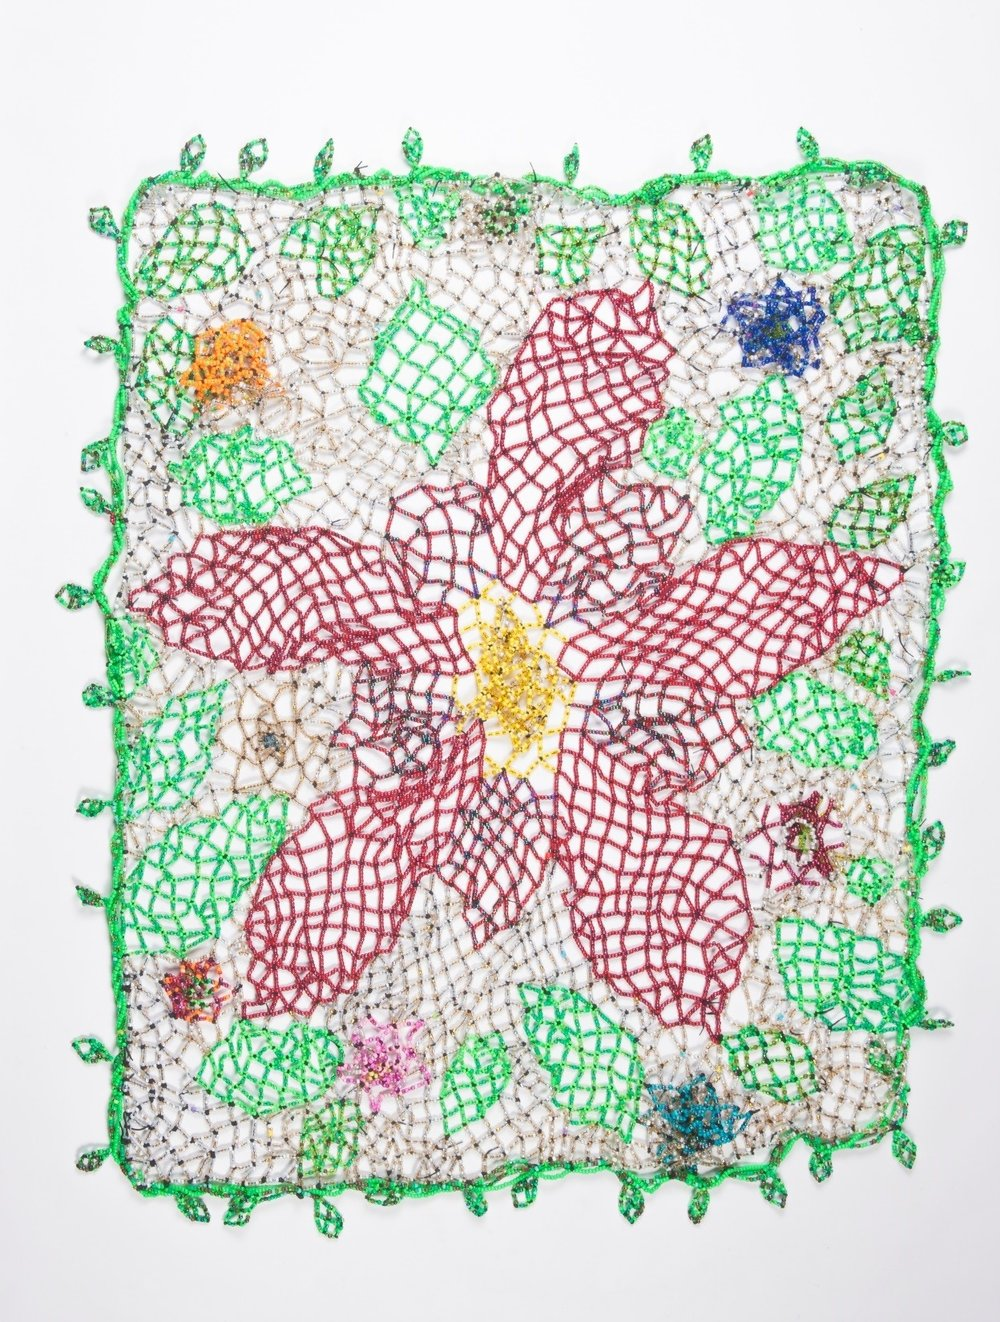 #19 - Grandmothers Garden          Sherry Tamburo and Heather Beauvais    This blanket was inspired by the stories that were told by several of the residents during our beading sessions. It became apparent that Grandmothers play a significant part in shaping our lives.